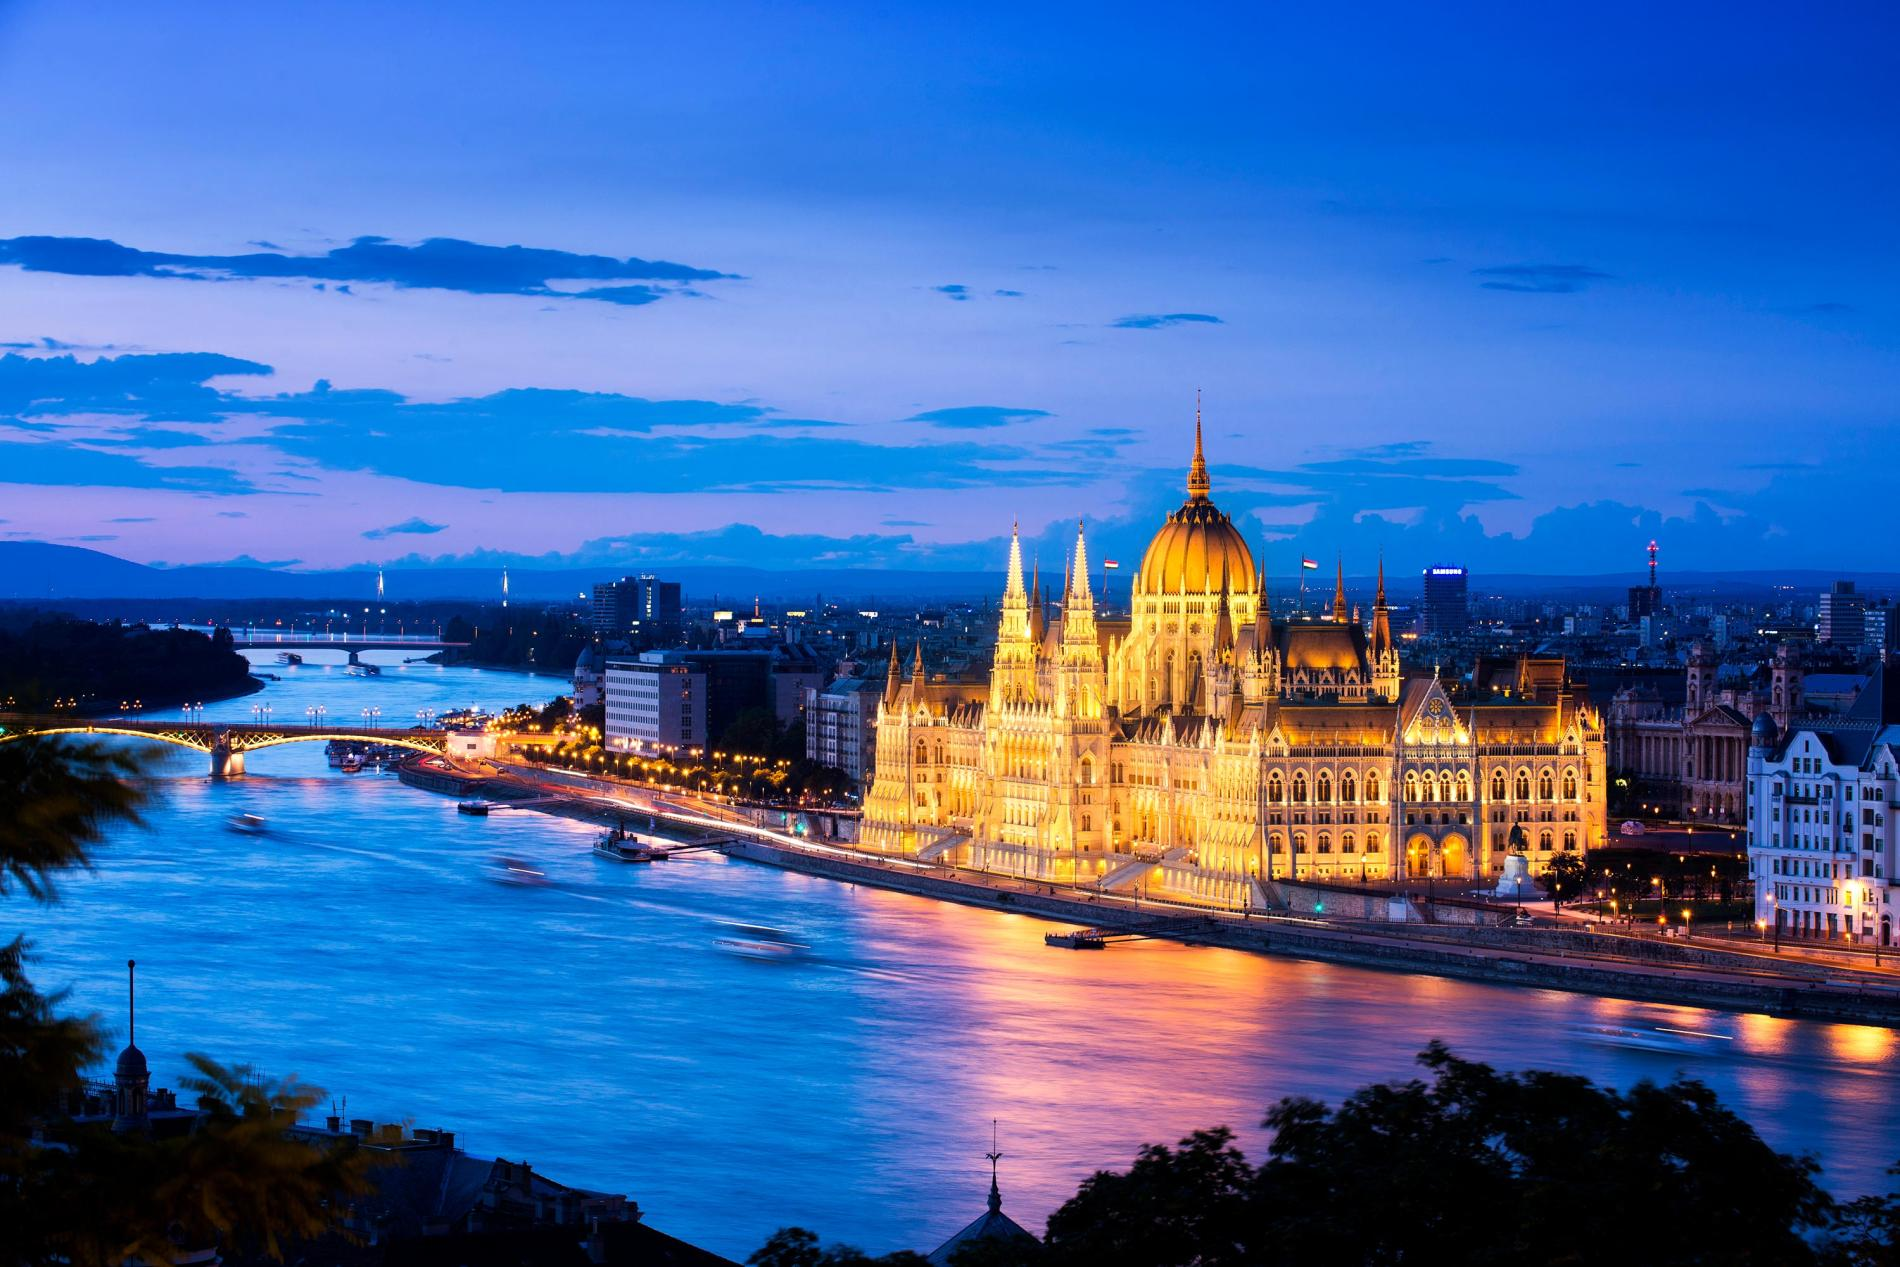 Budapest travel guide for first-time visitors